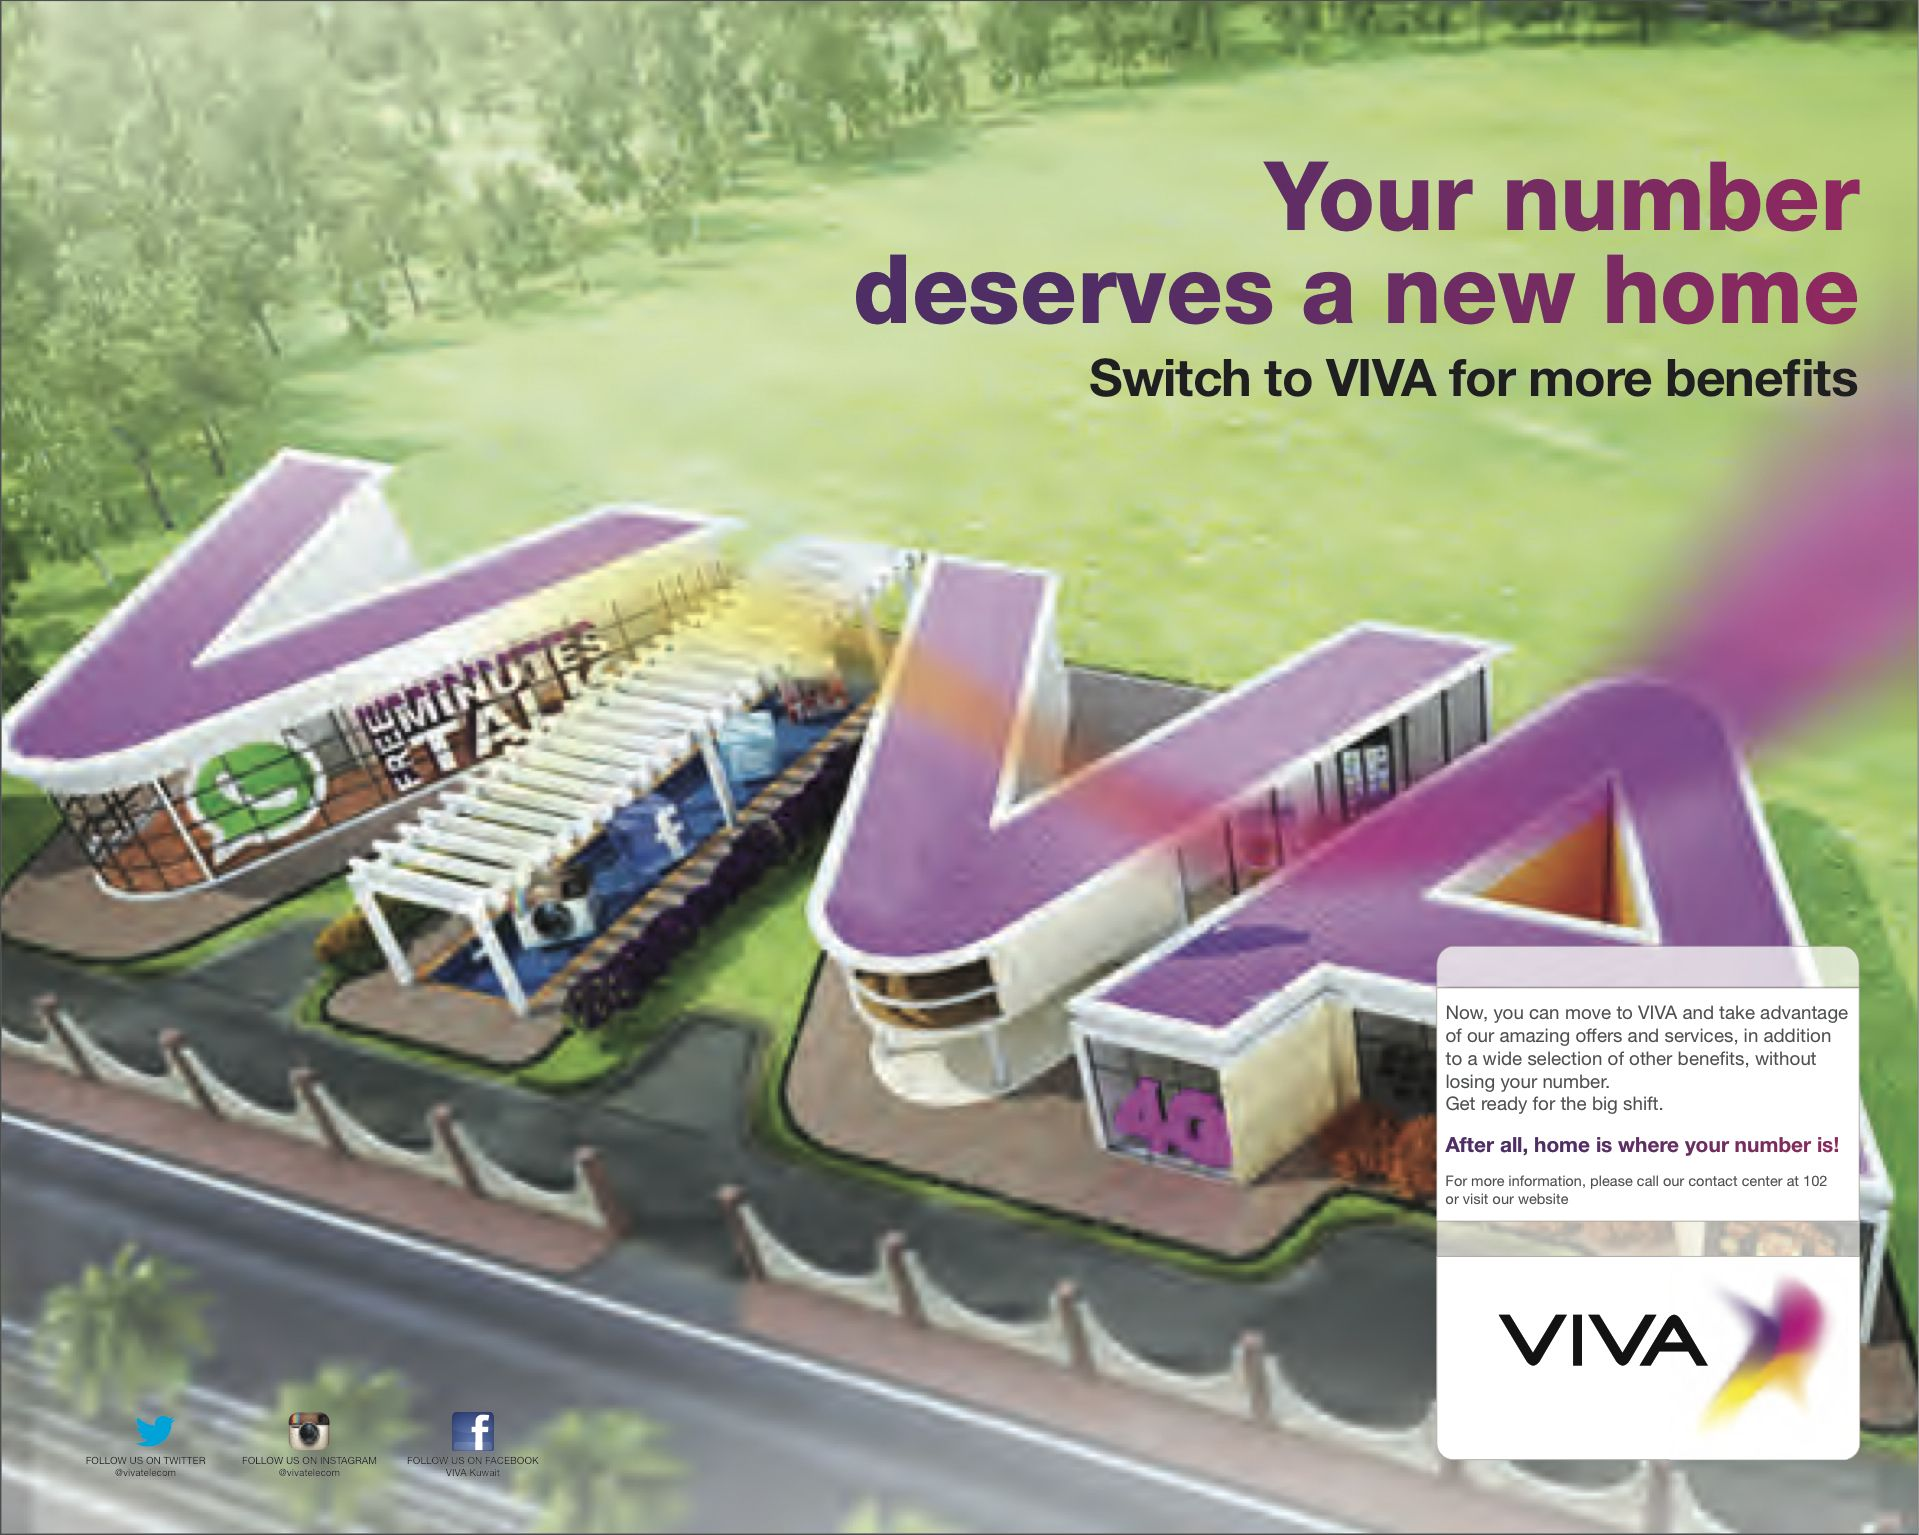 VIVA announced today that it is now officially open and is